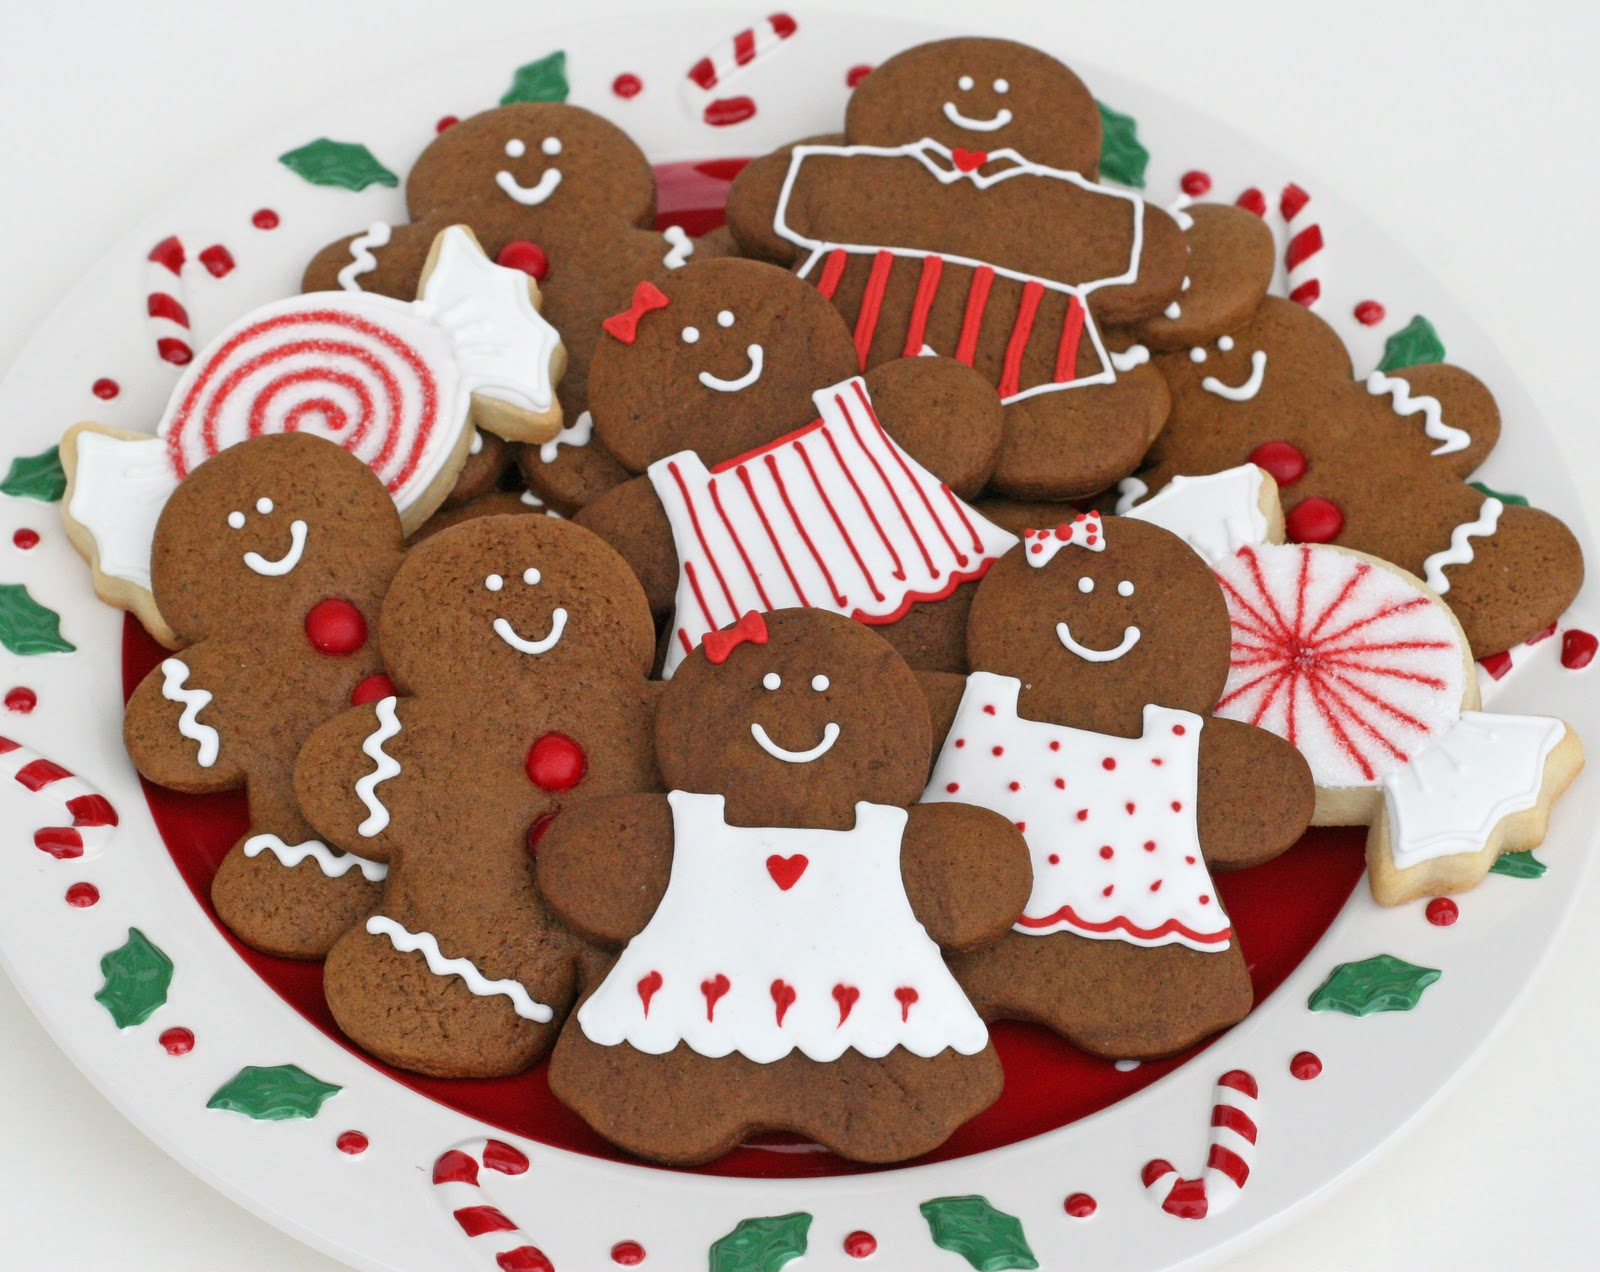 Gingerbread cookie decorating ideas | Gingerbread Party | Pinterest